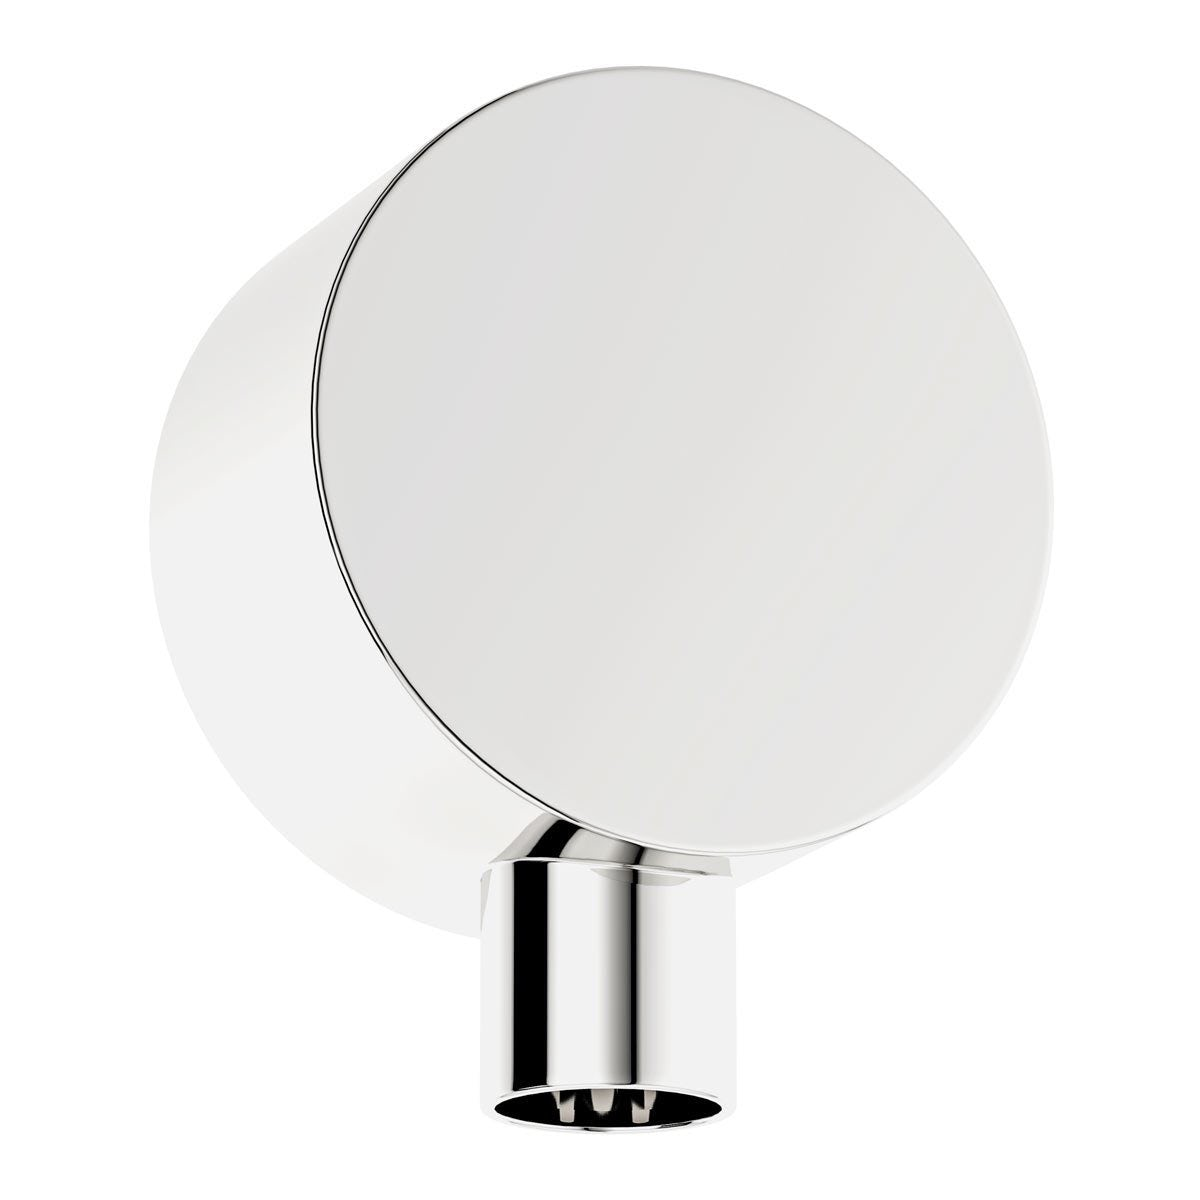 Mode Contemporary round brass wall shower outlet